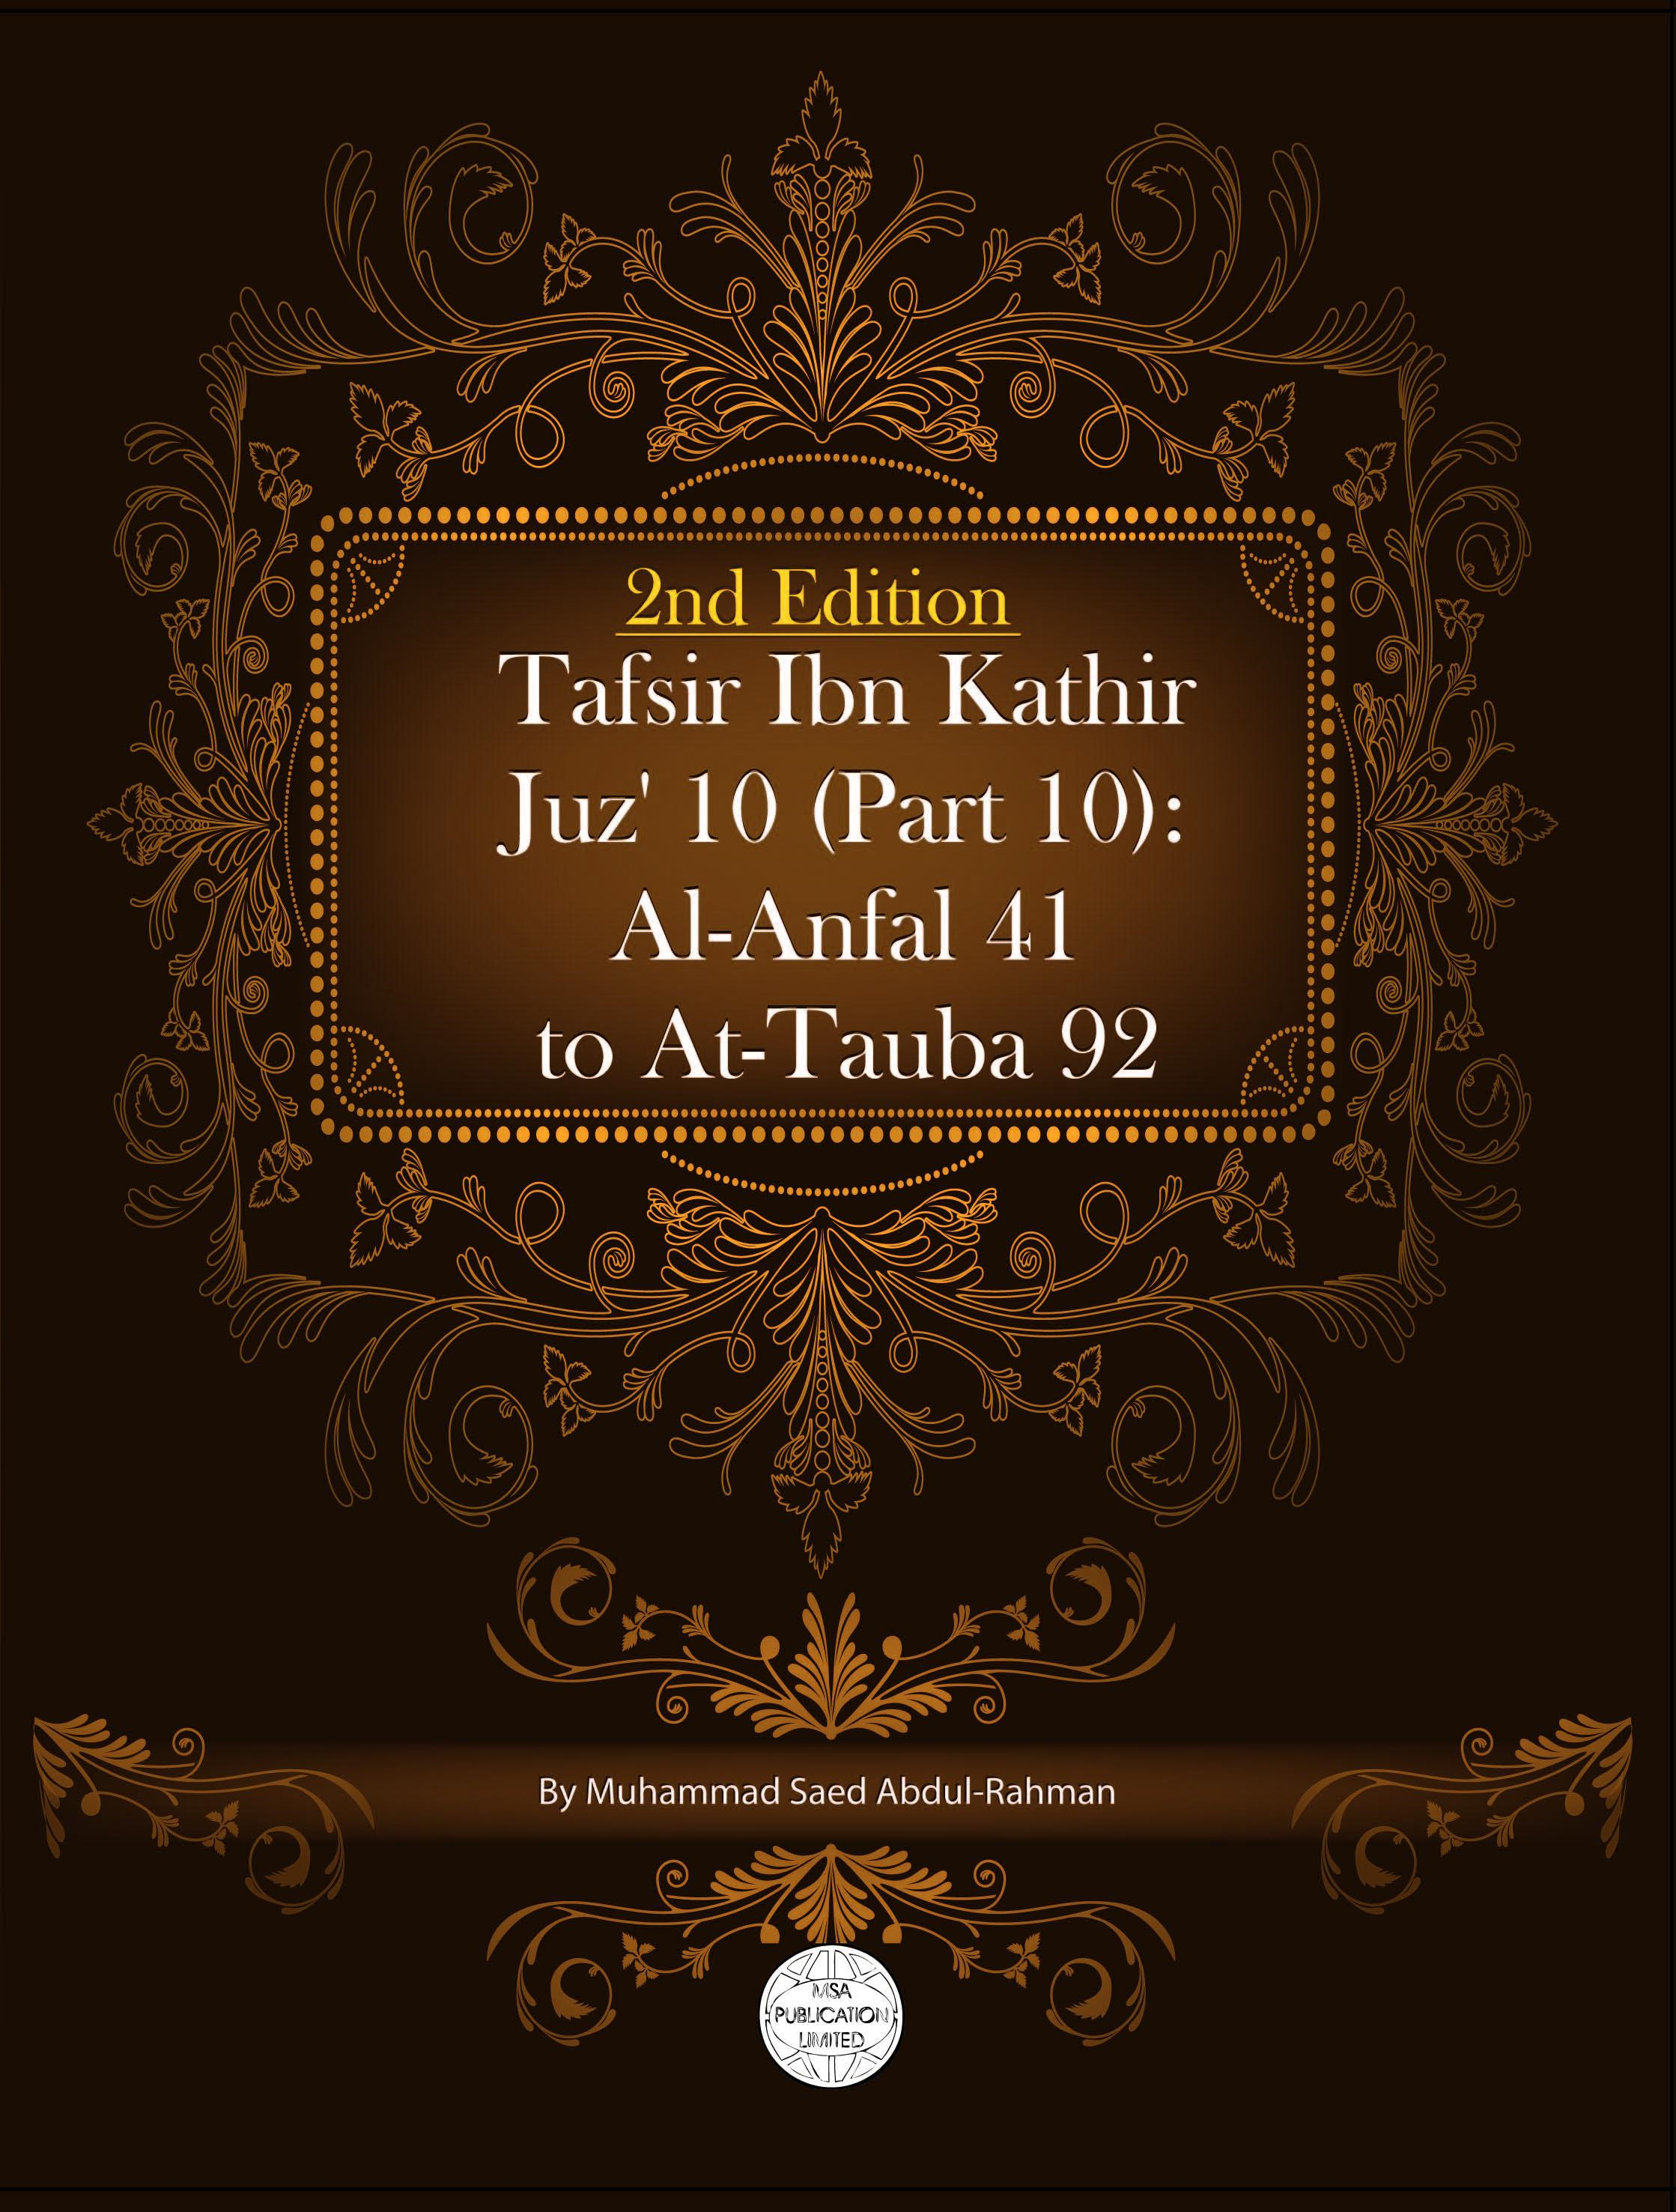 Tafsir Ibn Kathir Juz' 10 (Part 10): Al-Anfal 41 To At-Tauba 92 2nd Edition